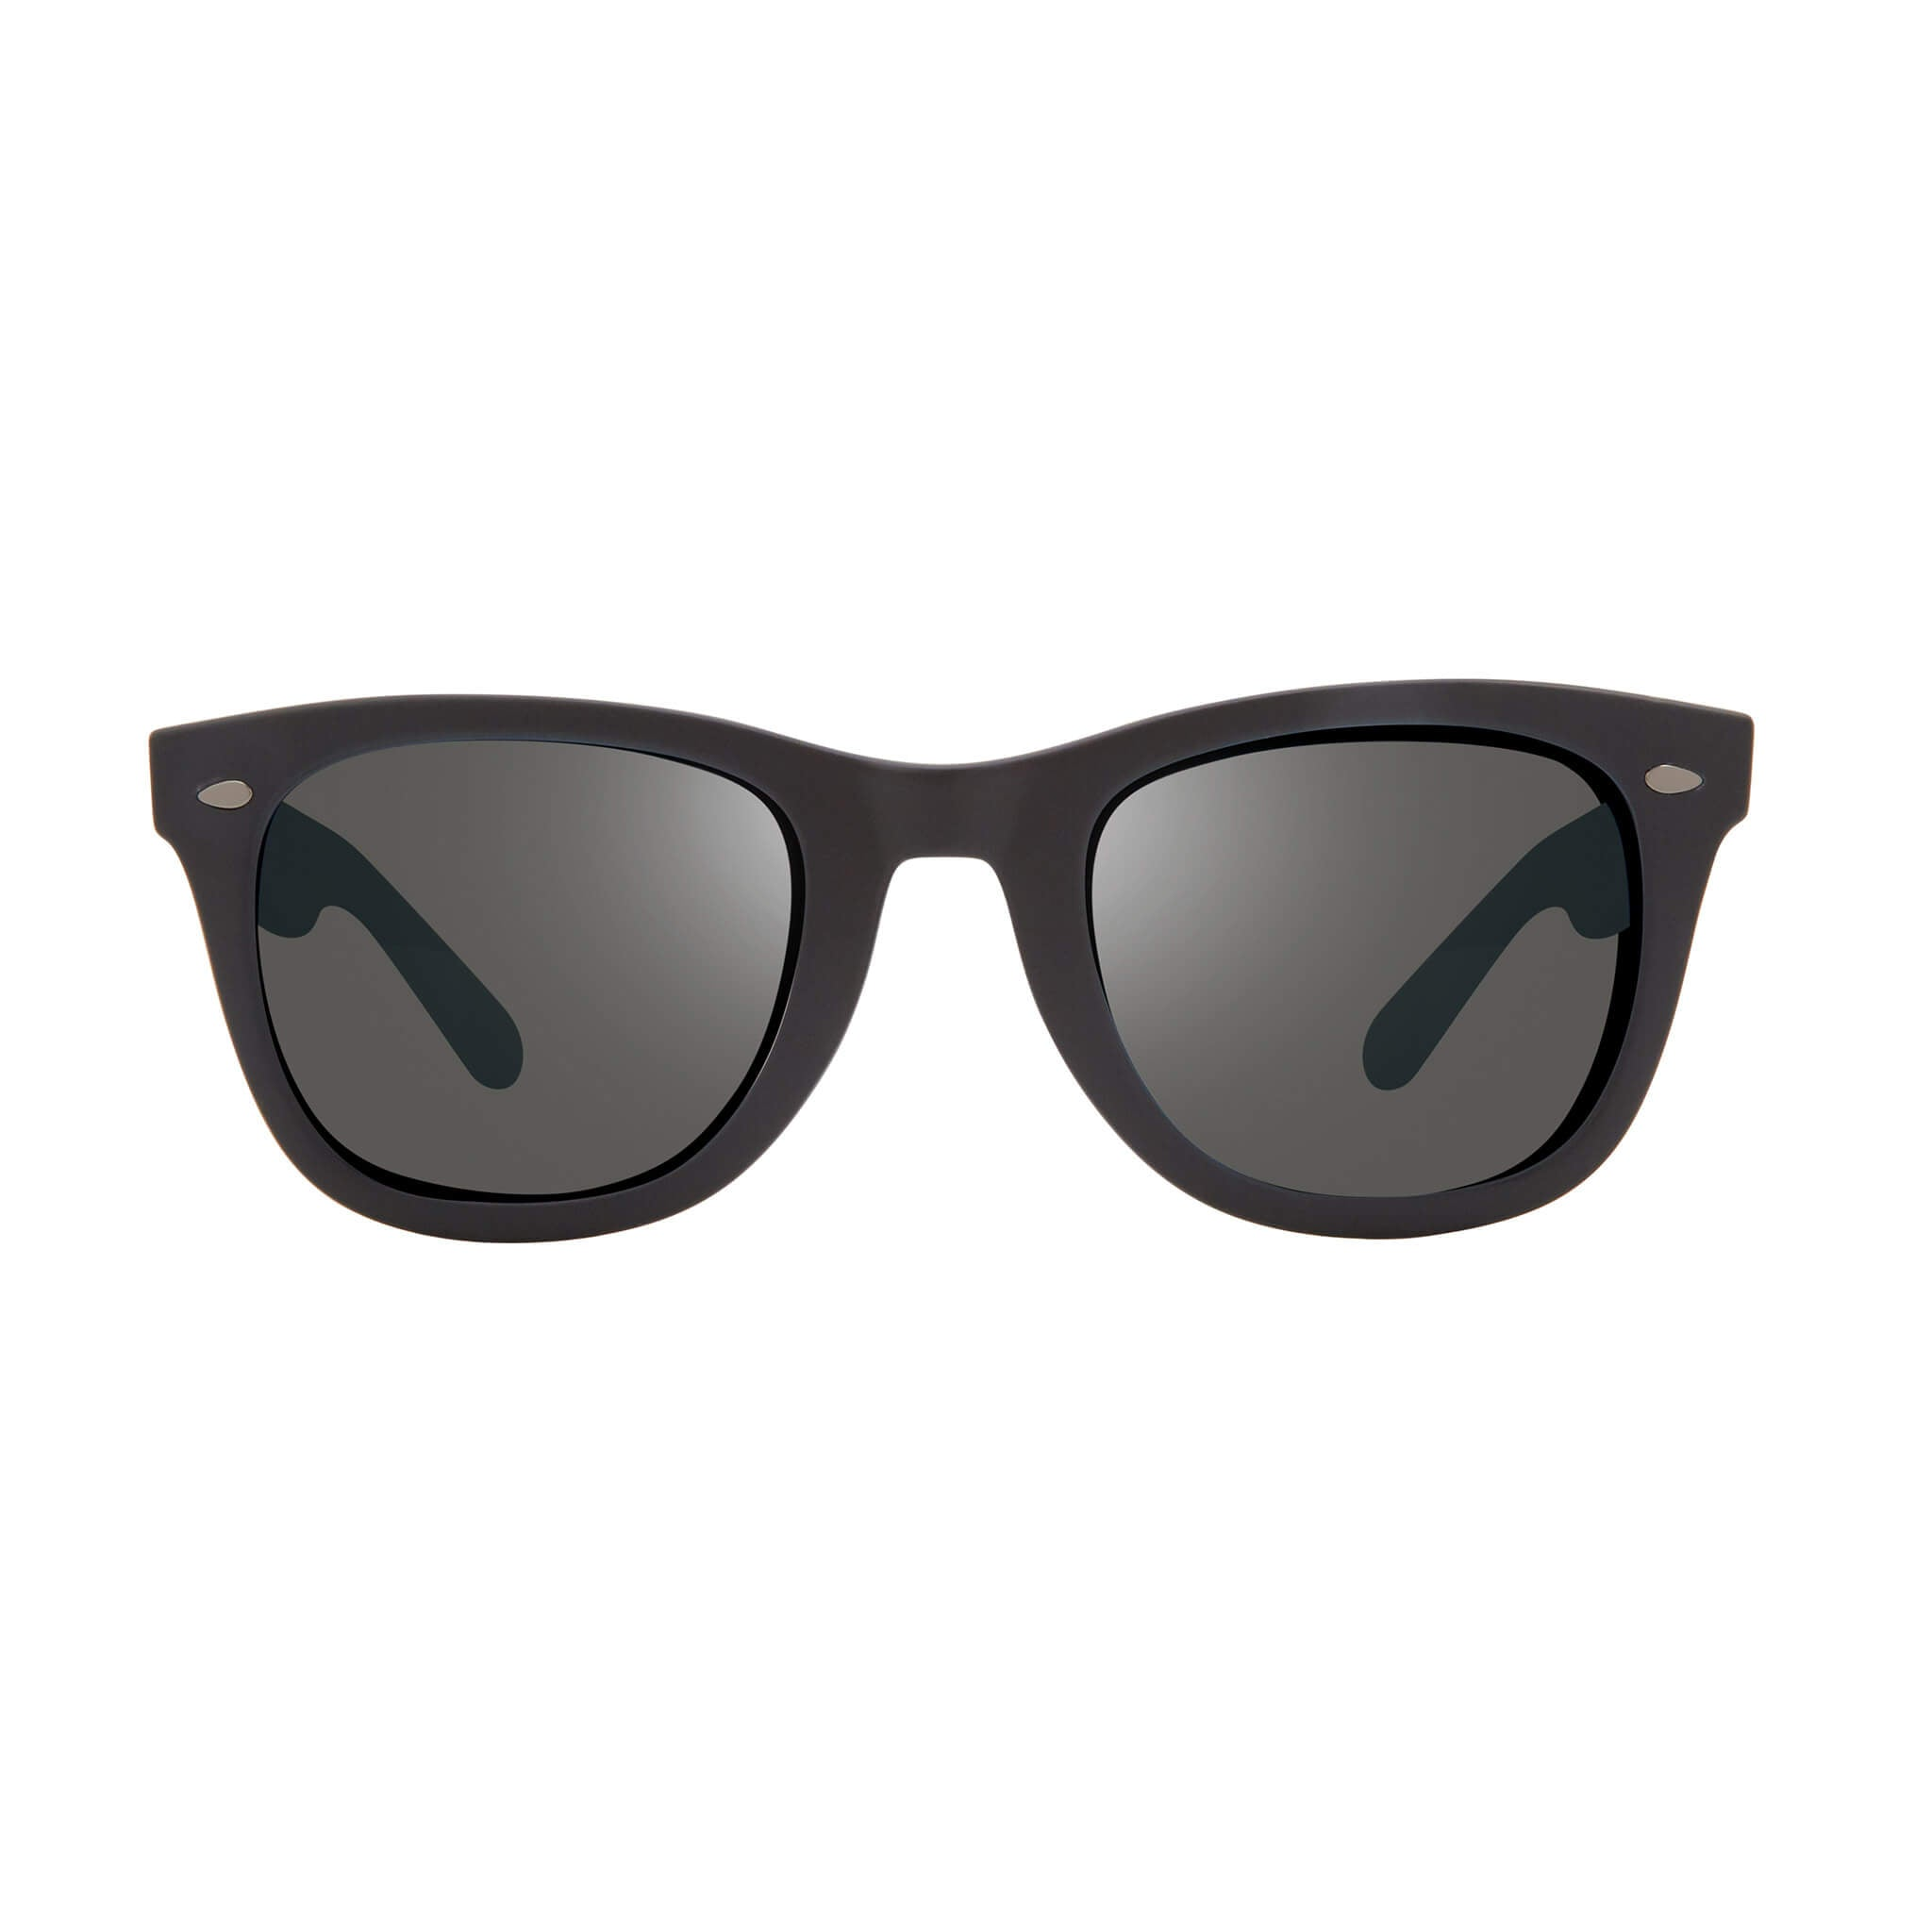 Forge Matte black + graphite lens:Front view of Bear Grylls Revo Black with Graphite lens sunglasses